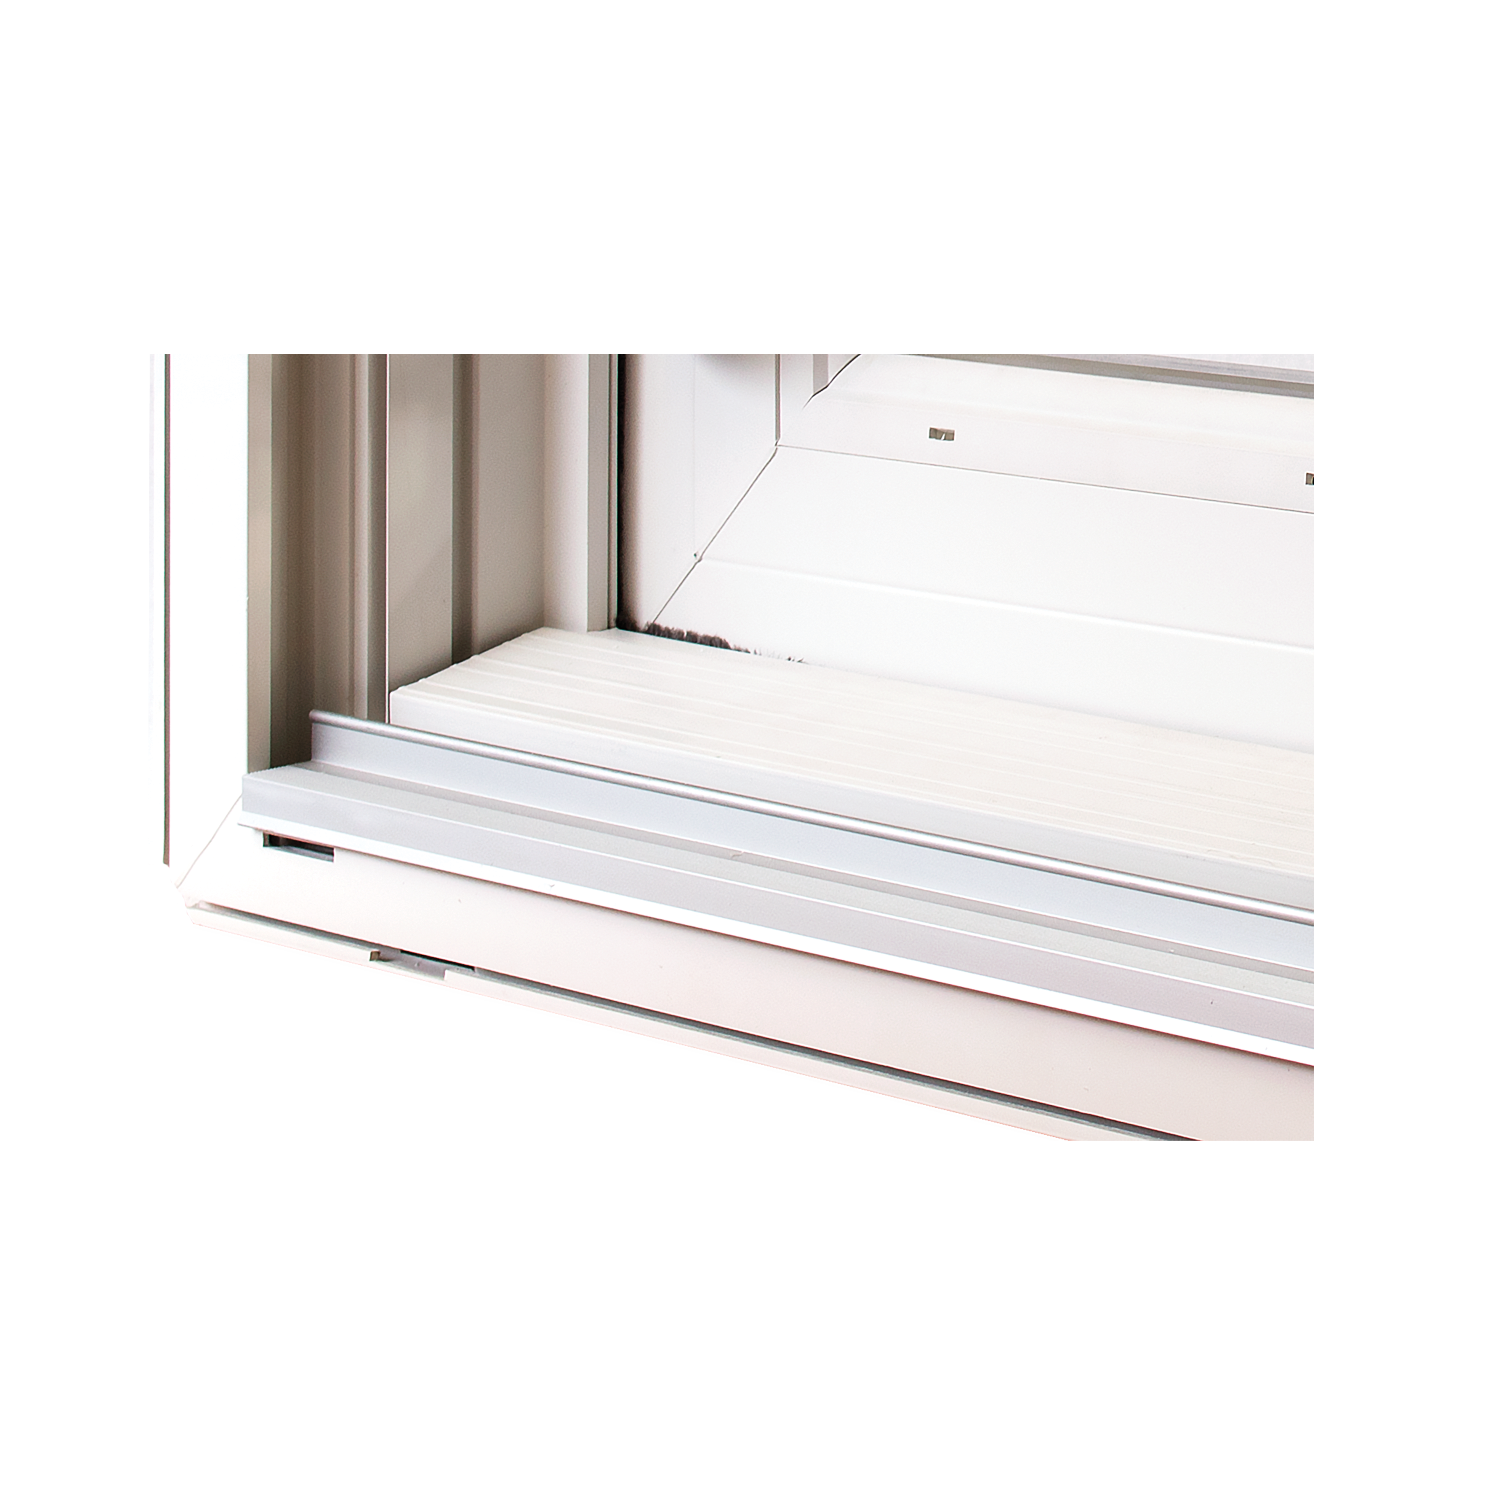 Alloy monorail system creates the EZ Glide sash feature.